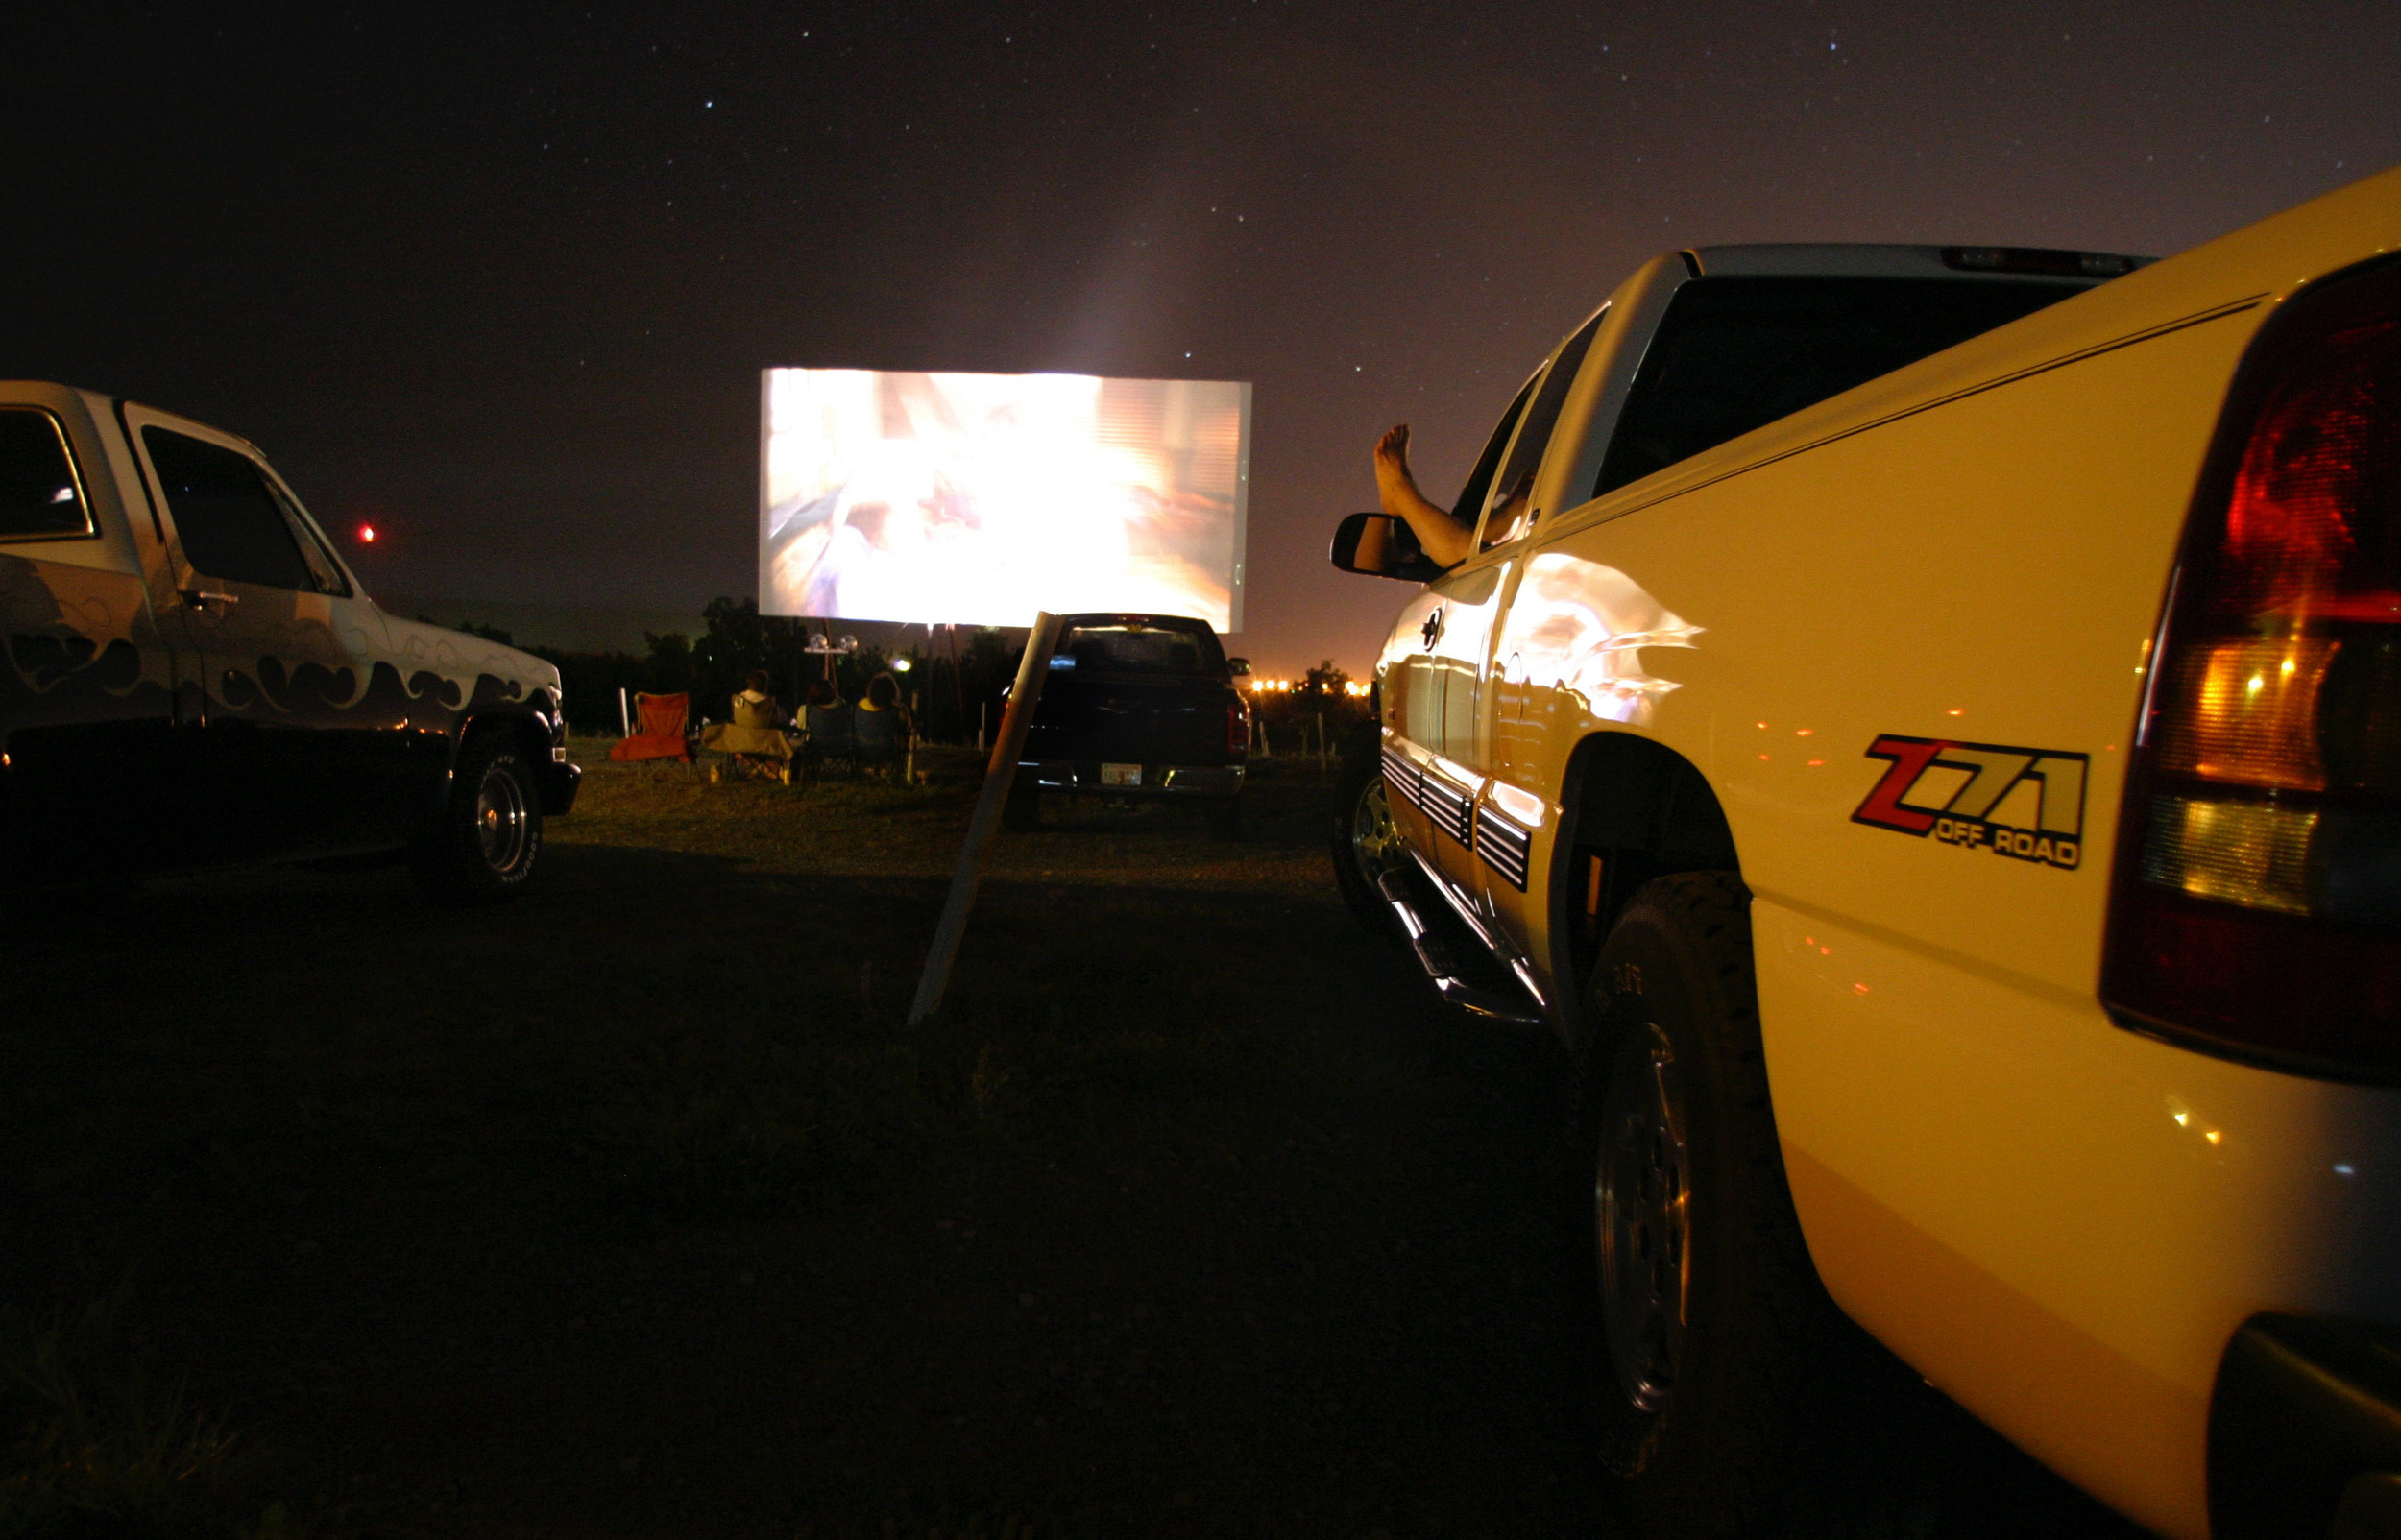 A foot sticks out of the window at the crowded drive-in theater in Weatherford, Oklahoma.